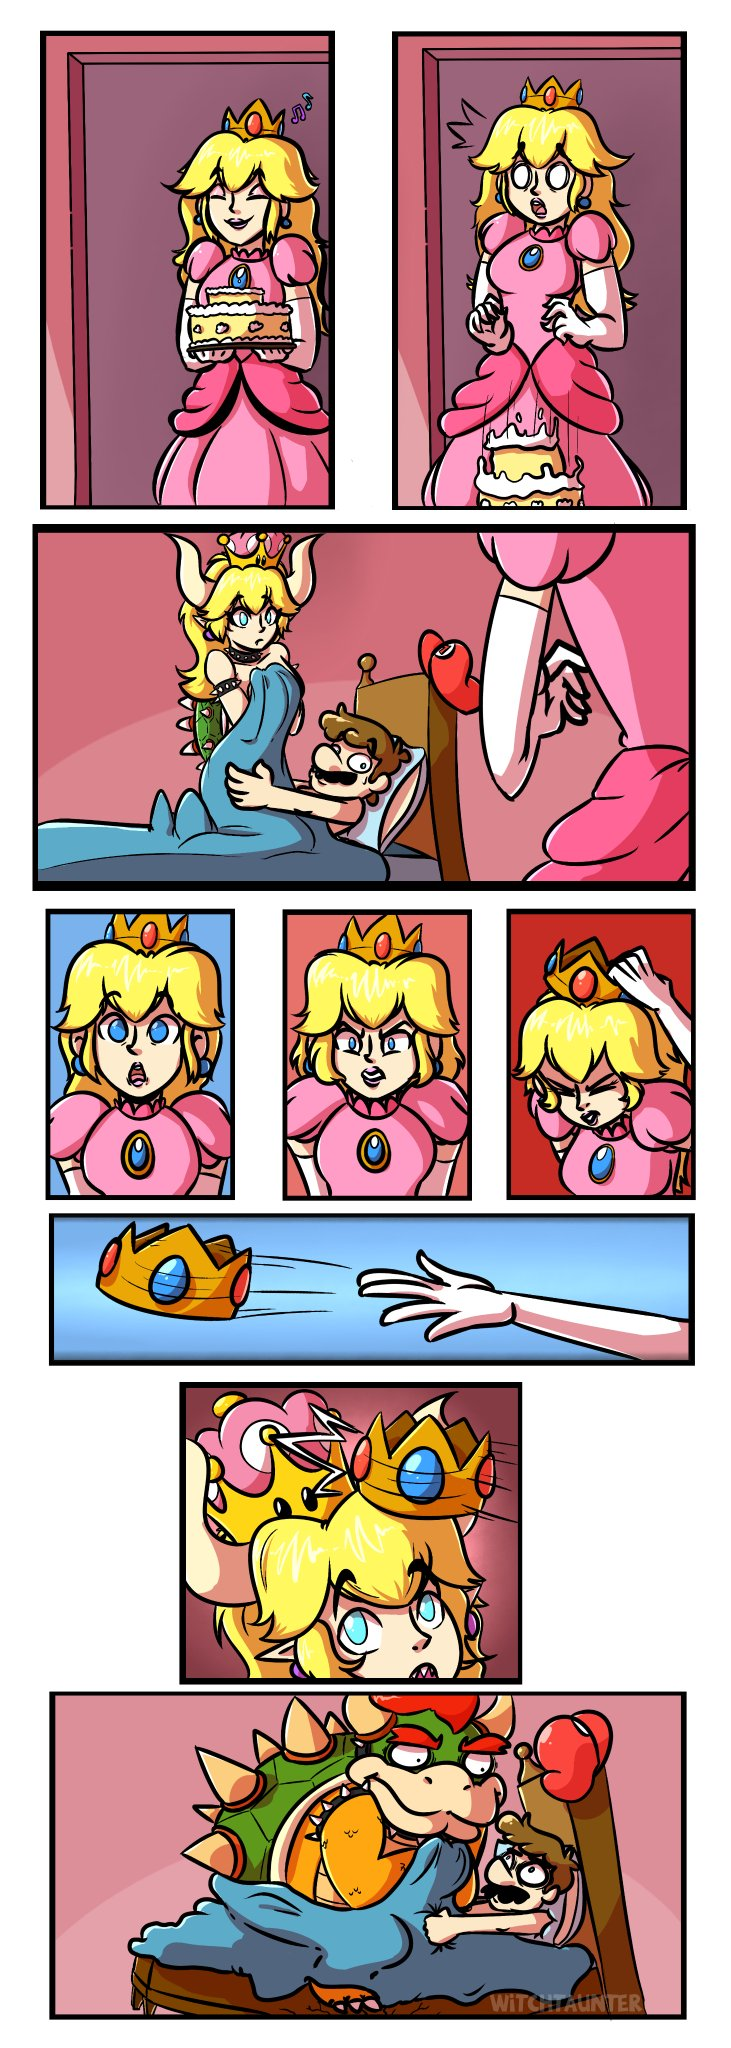 Peach and bowser sexy comic pic 682